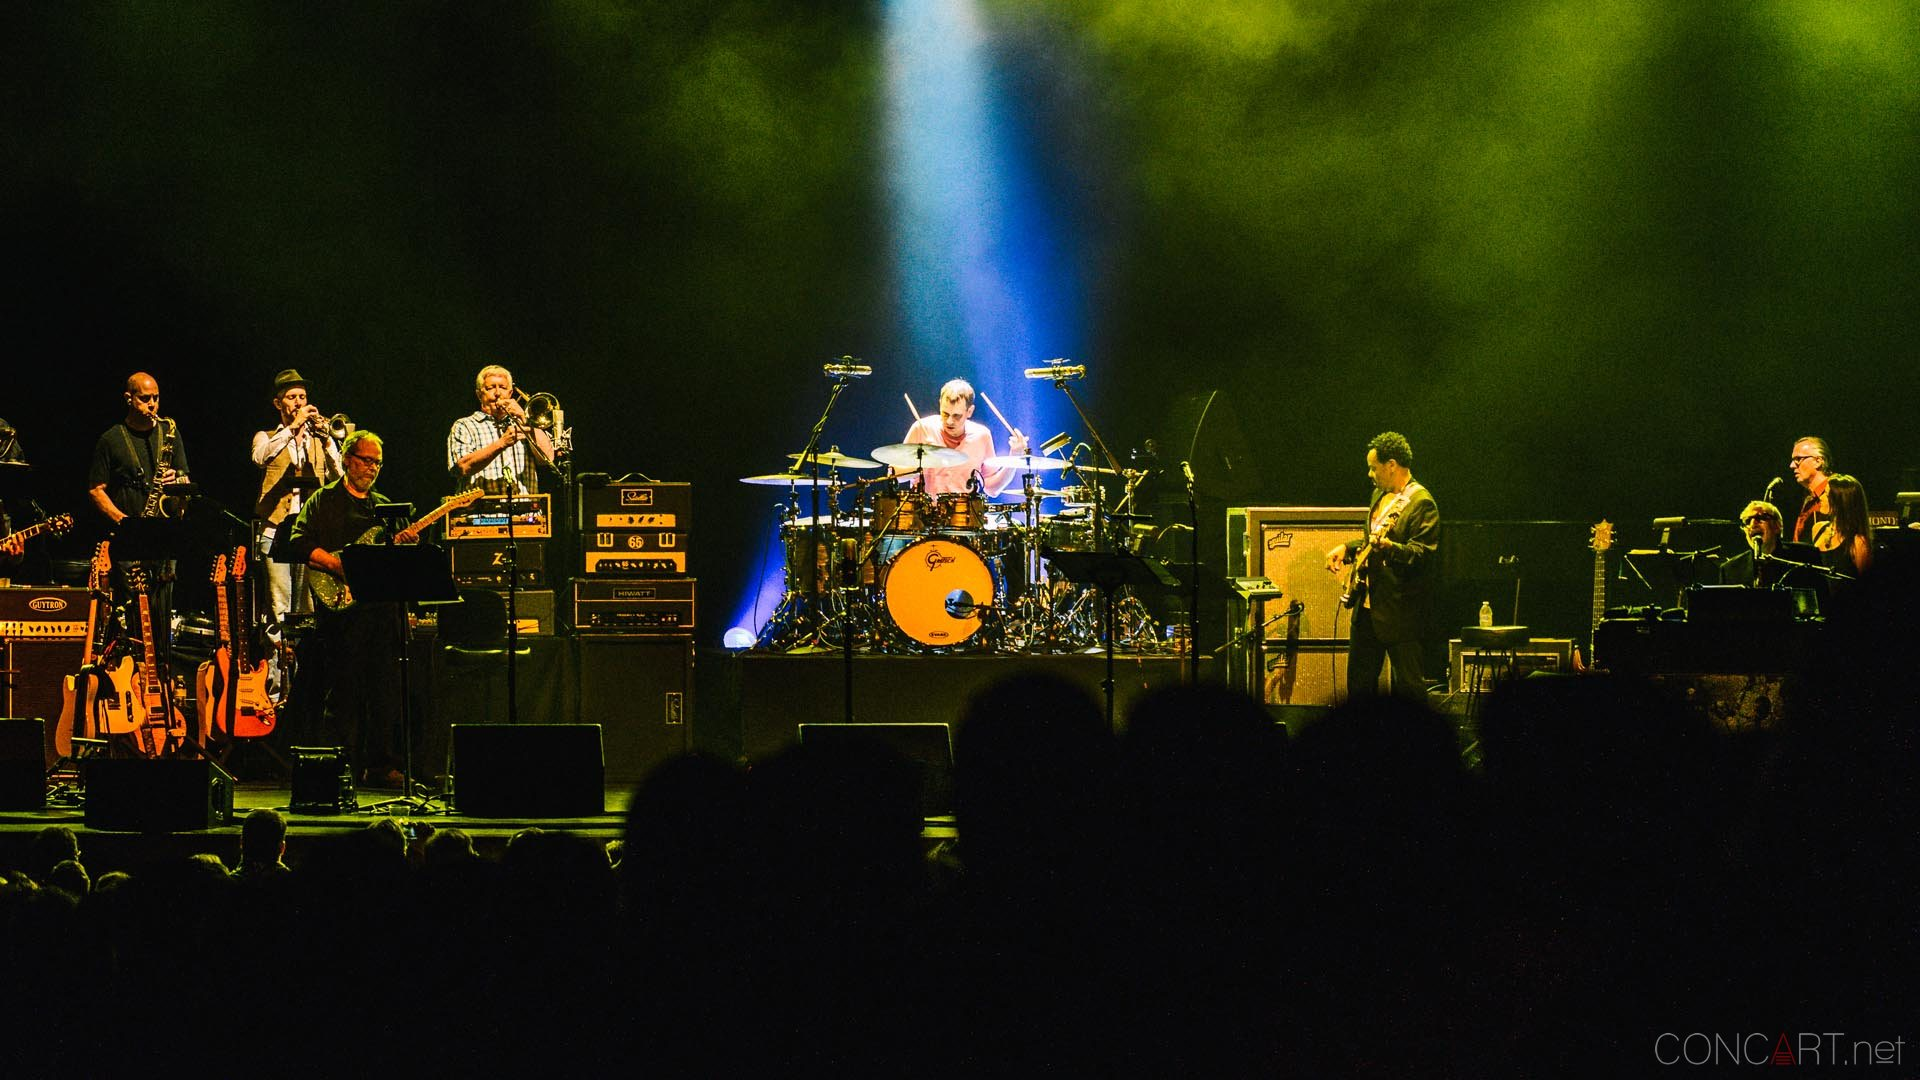 steely_dan_live_old_national_murat_theatre_indianapolis_2013-27